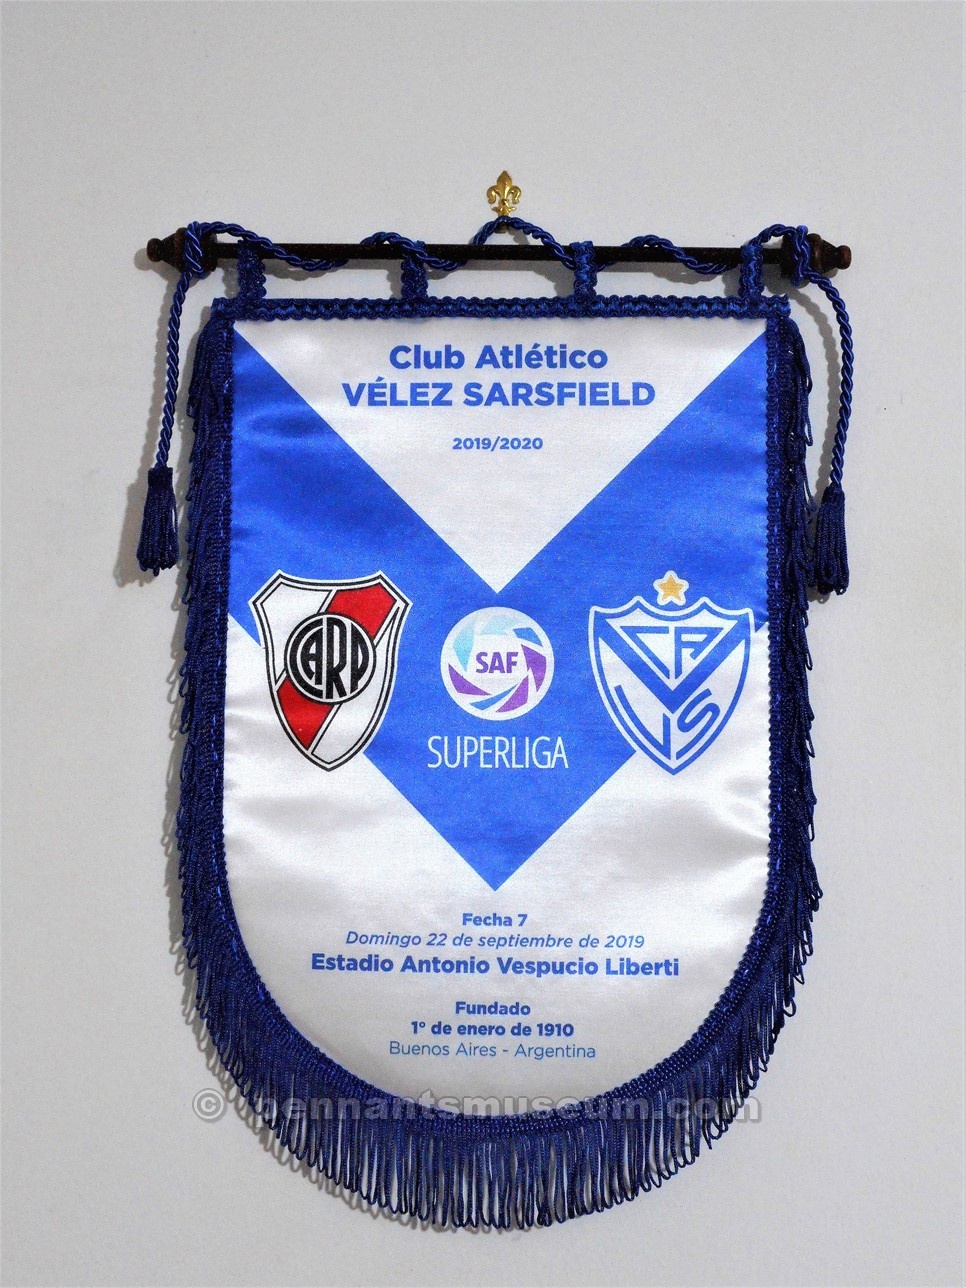 Printed pennant issued for the Argentine SuperLiga match River Plate vs Velez played on the 22nd September 2019